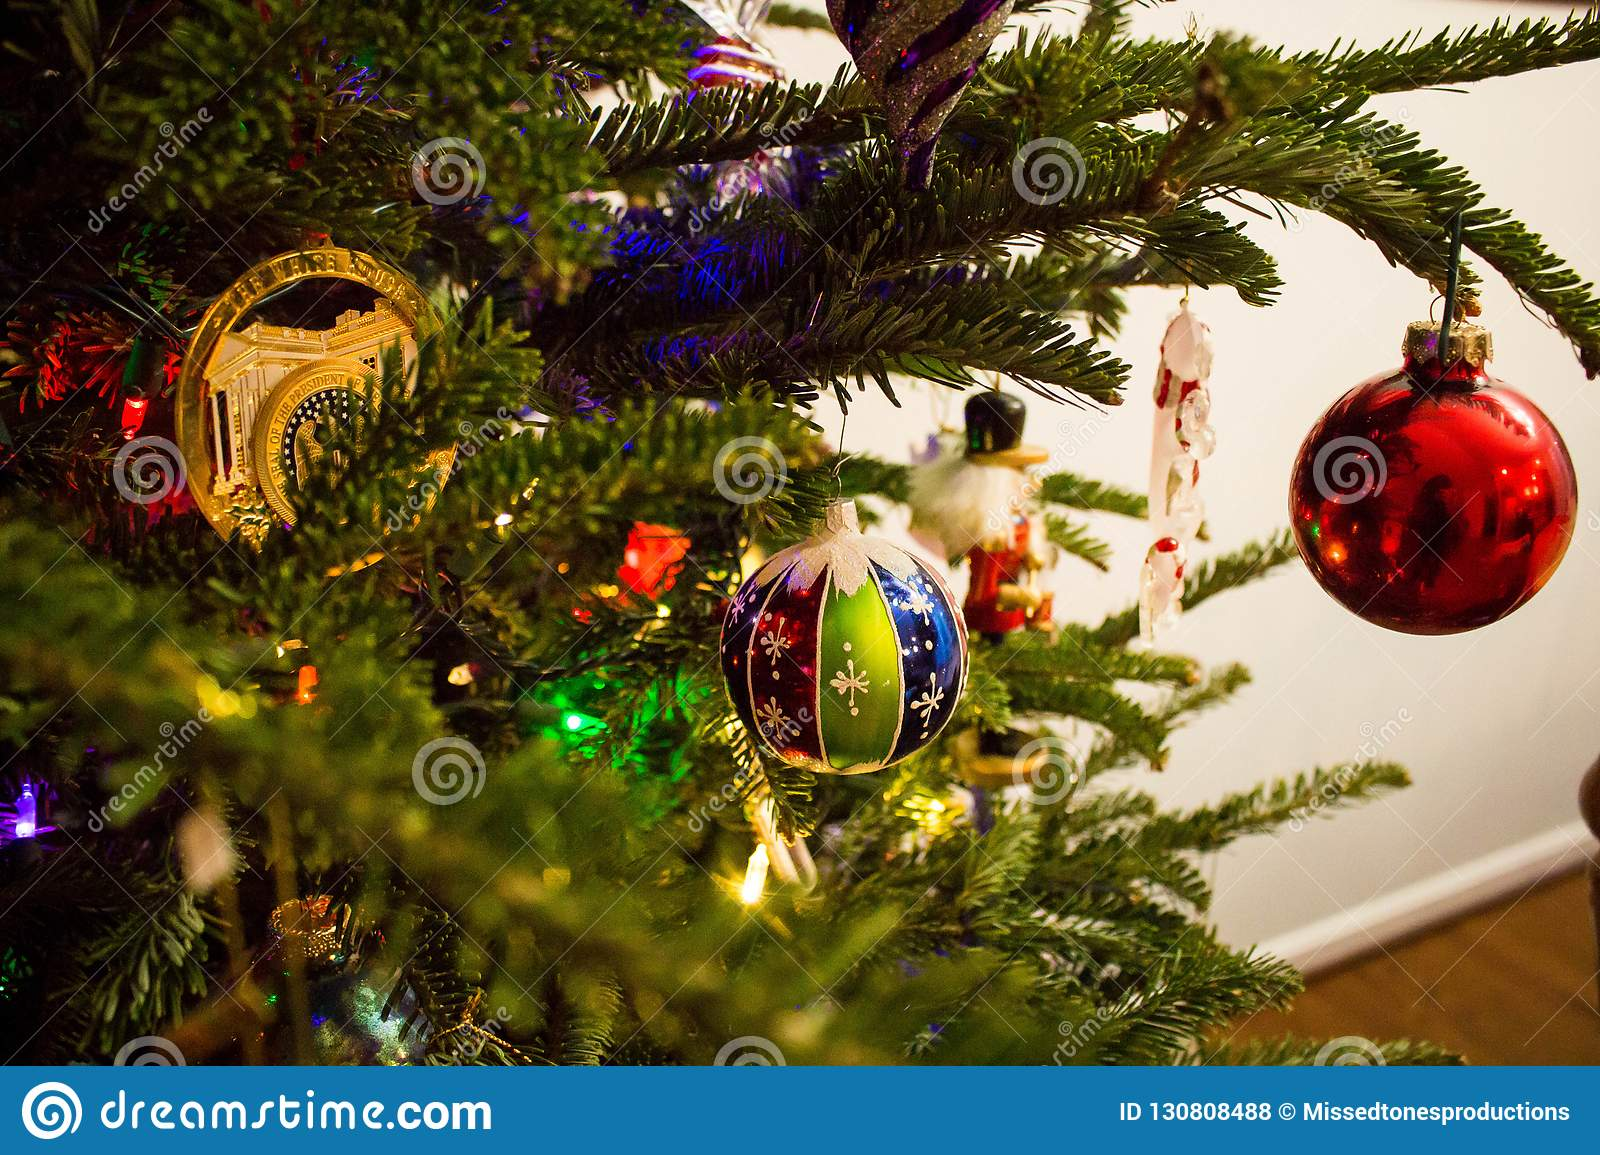 Glass Christmas Ornaments on a Green Tree